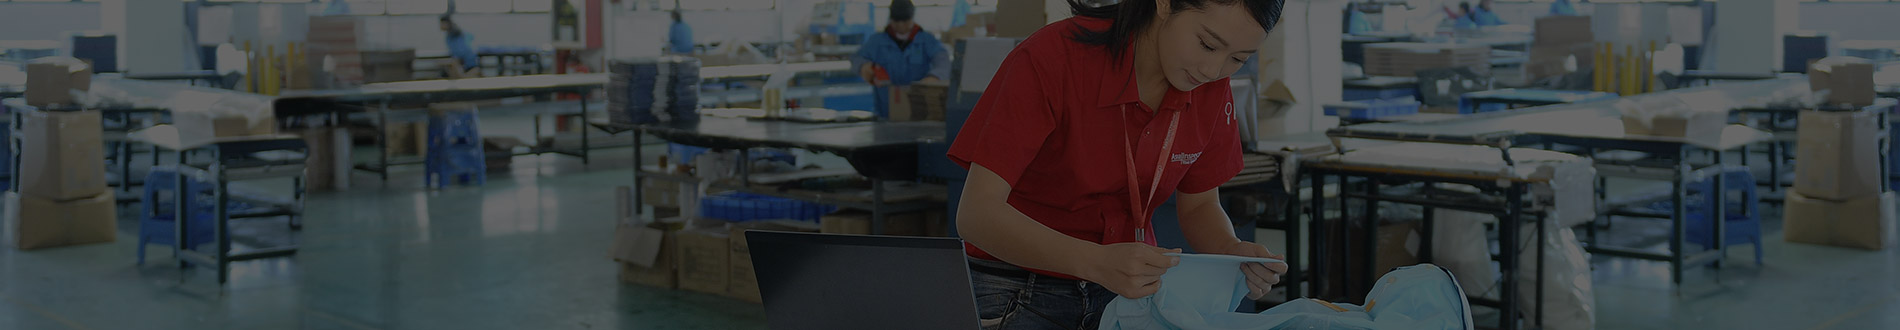 Garment & Apparel Quality Control Testing | AsiaInspection